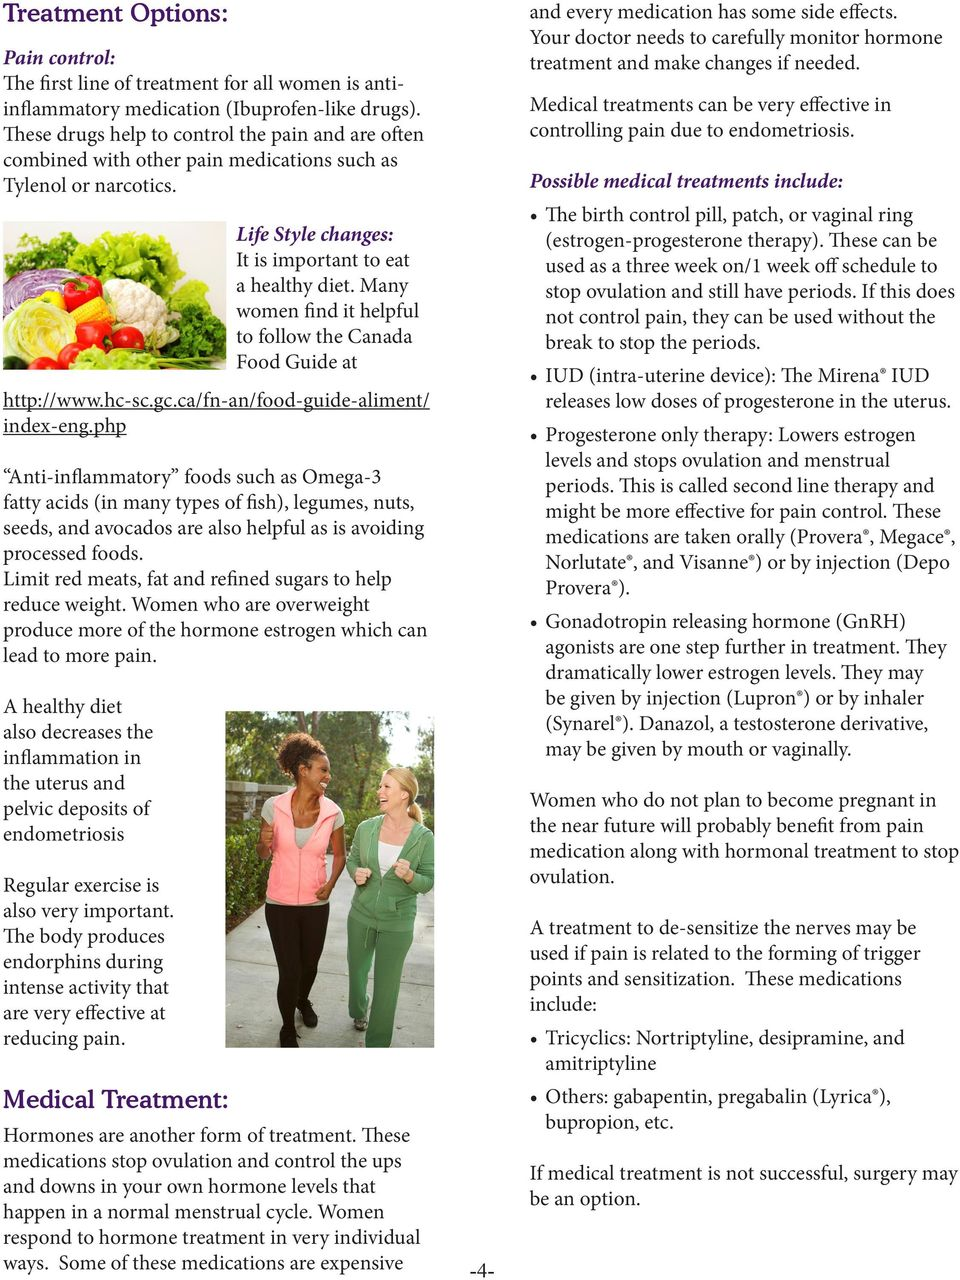 Many women find it helpful to follow the Canada Food Guide at http://www.hc-sc.gc.ca/fn-an/food-guide-aliment/ index-eng.